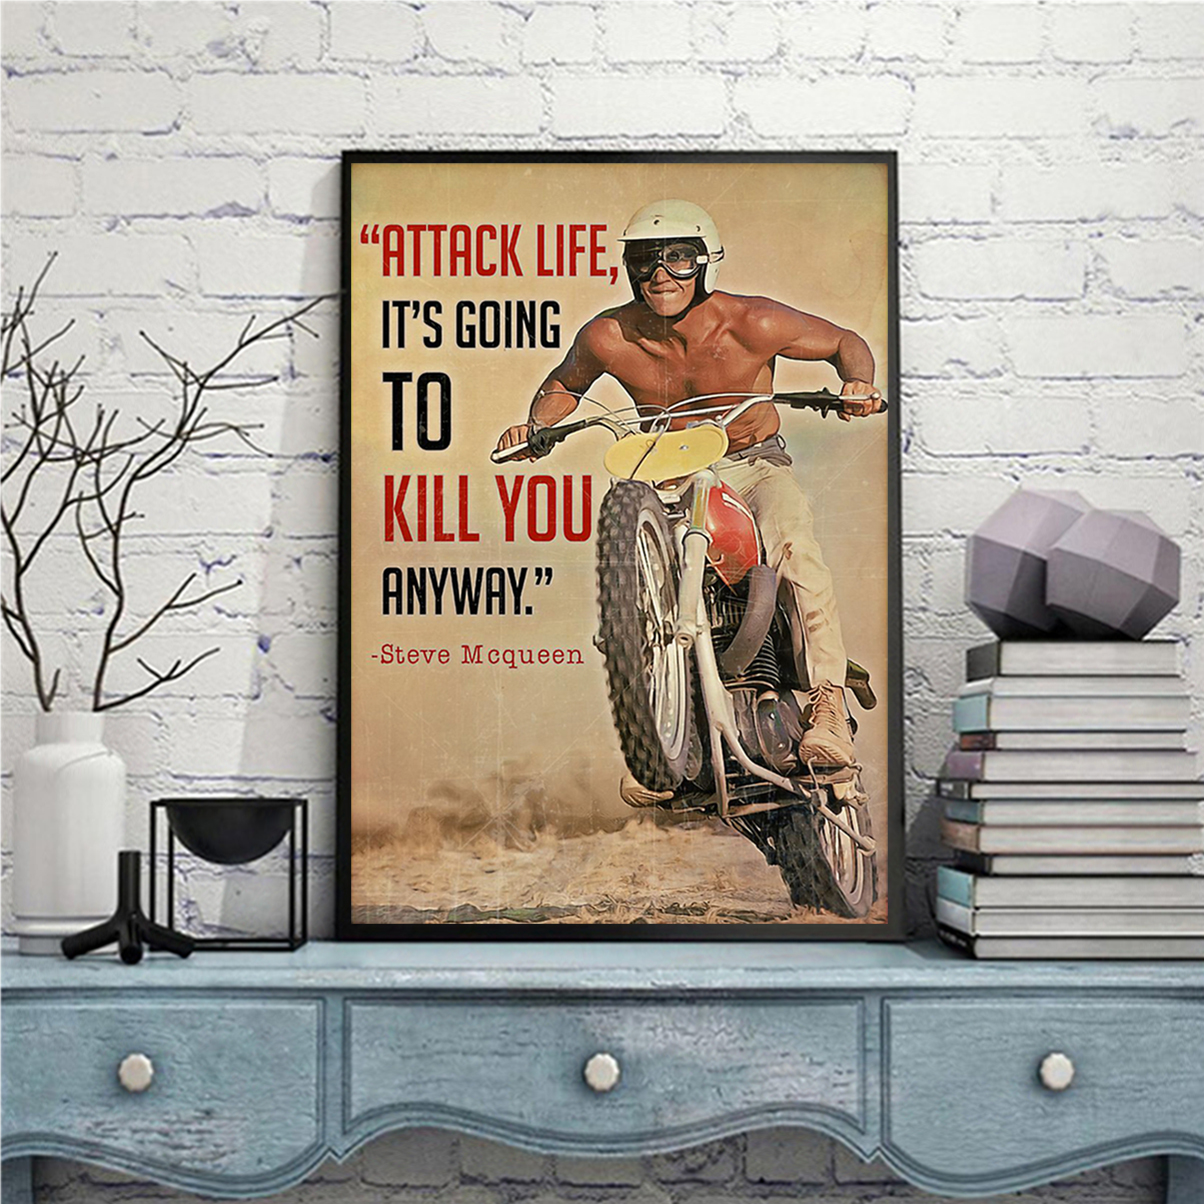 Attack life it's going to kill you anyway poster A1